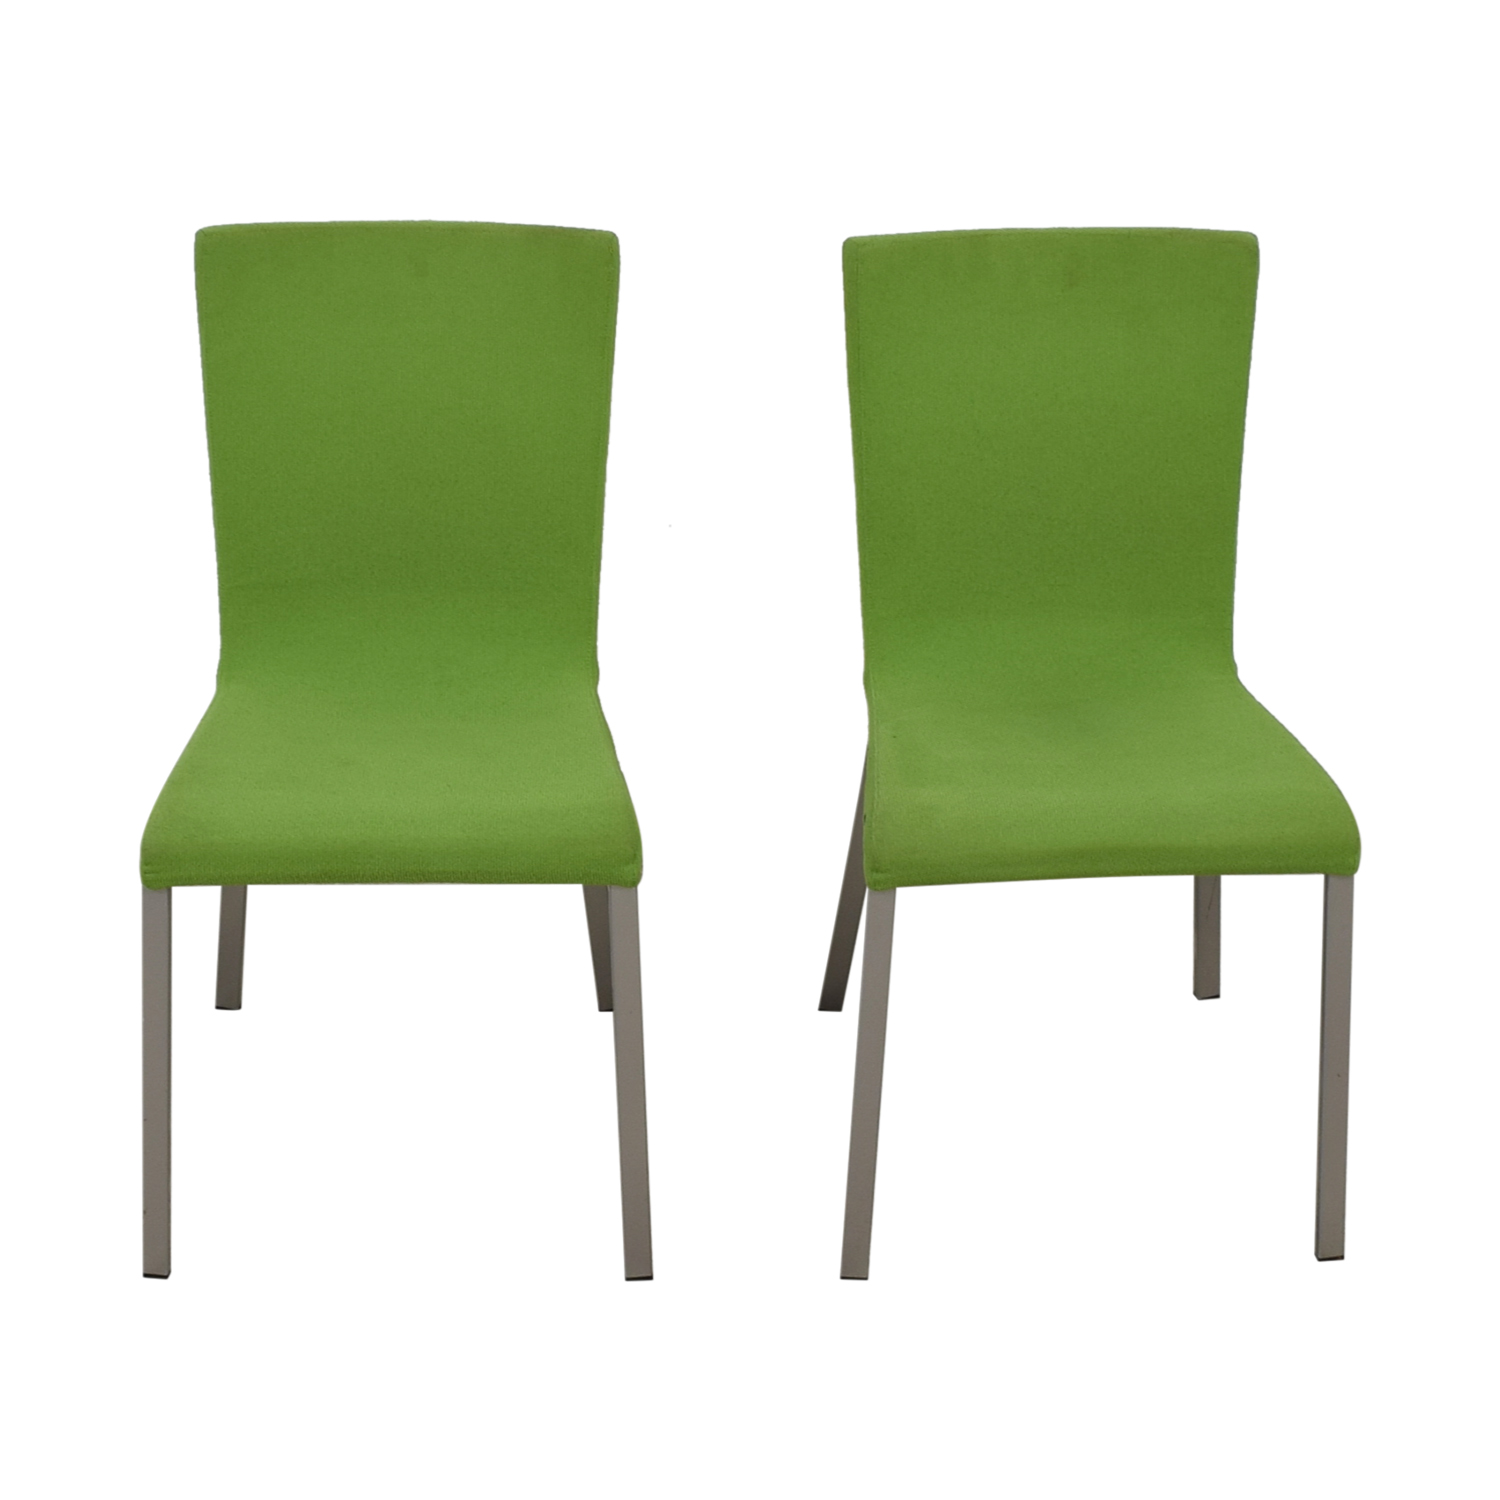 Calligaris Green Club Chairs / Sofas